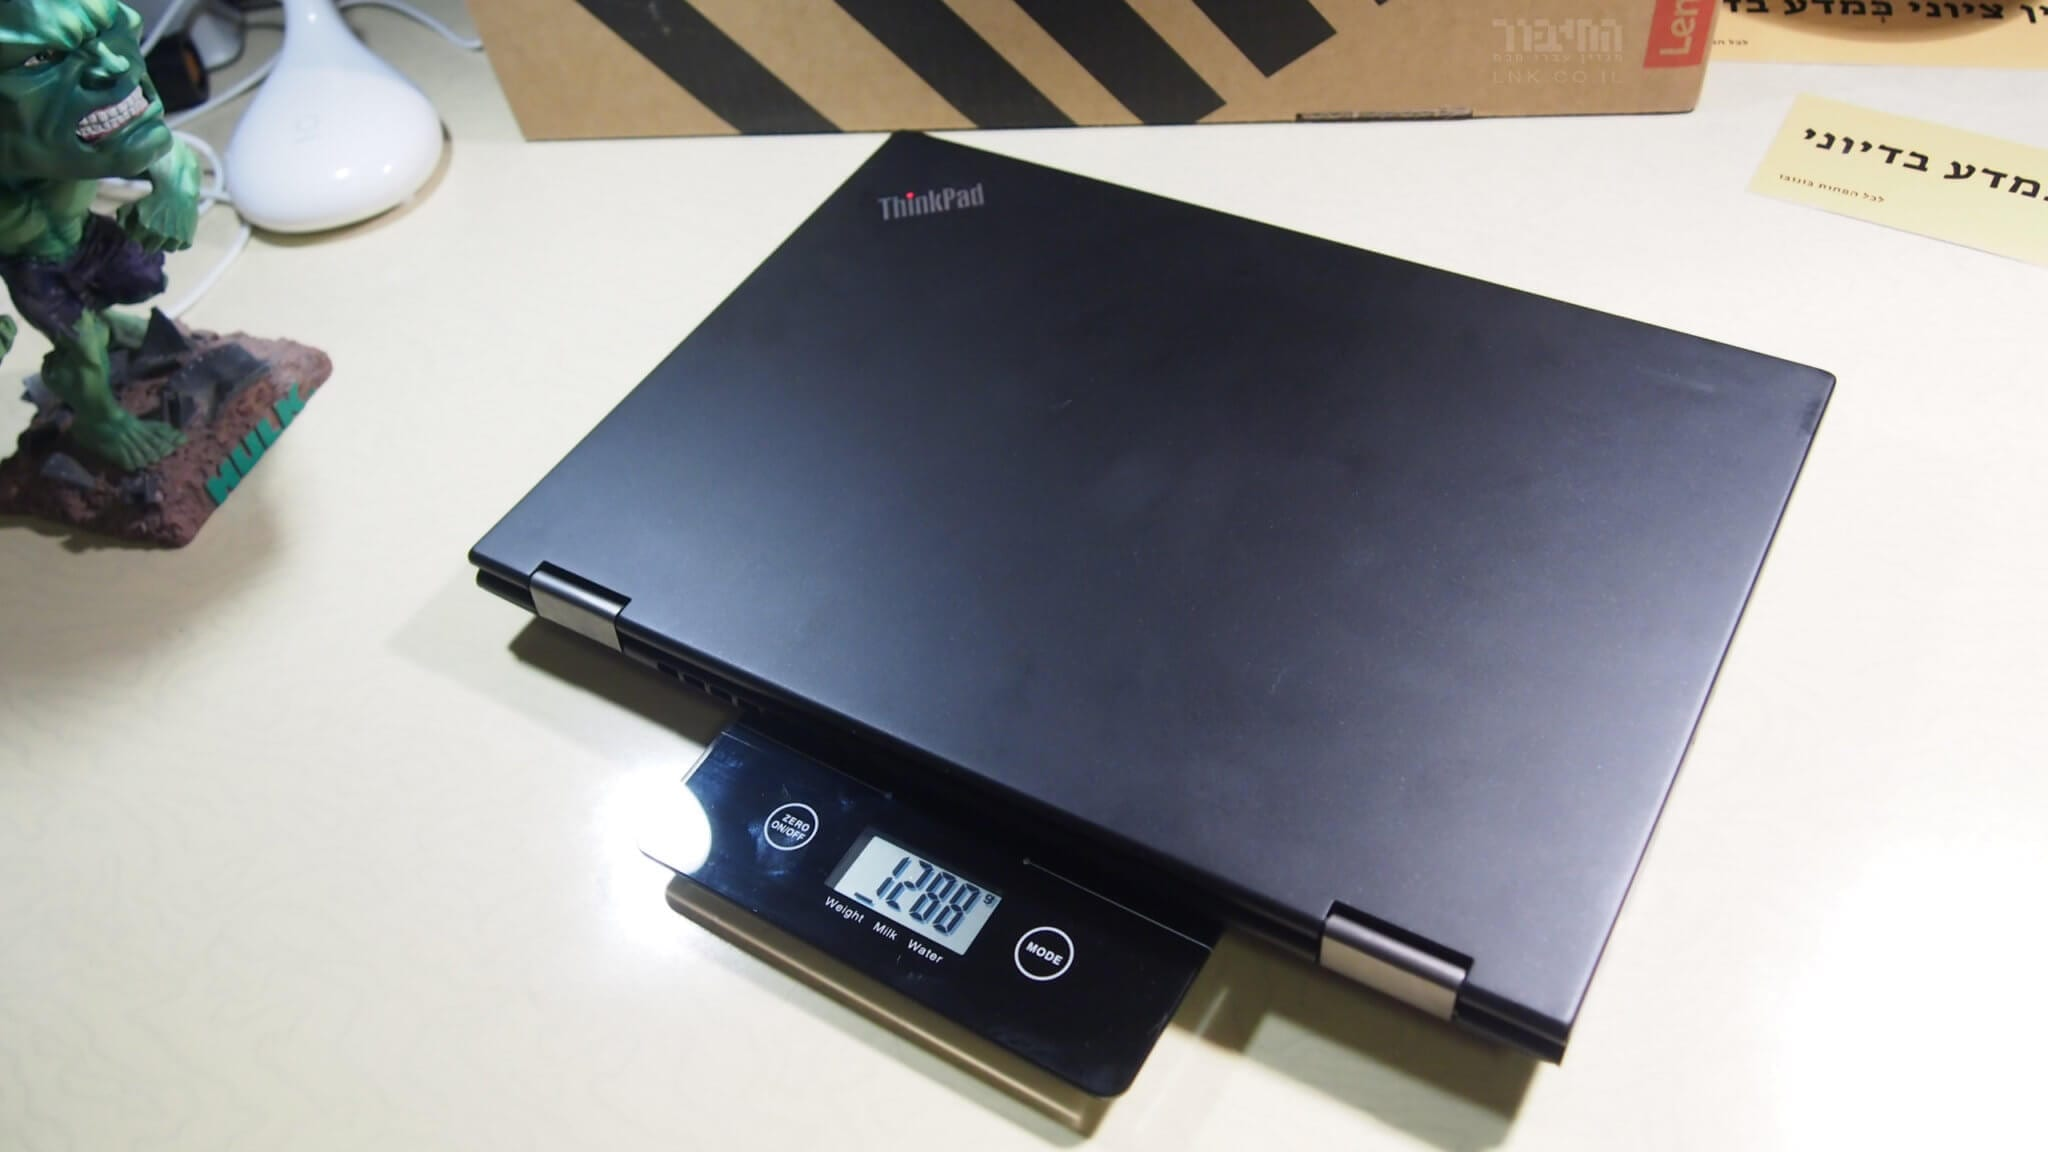 ThinkPad X13 Yoga Weights 1.3 Kg